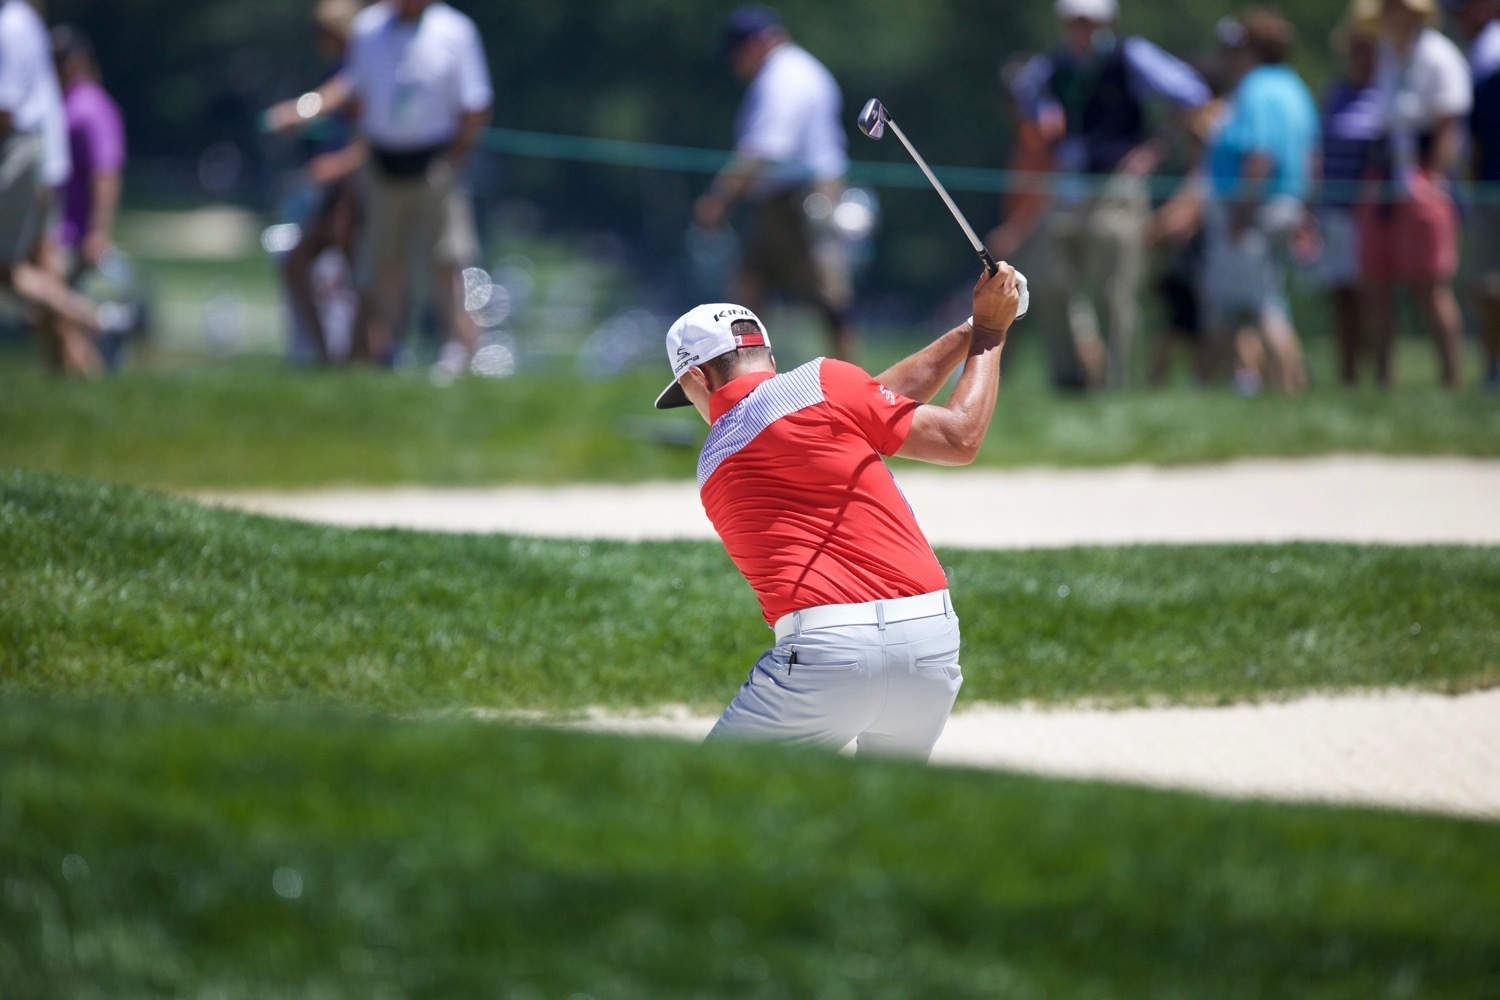 Rickie from the Bunker on #9